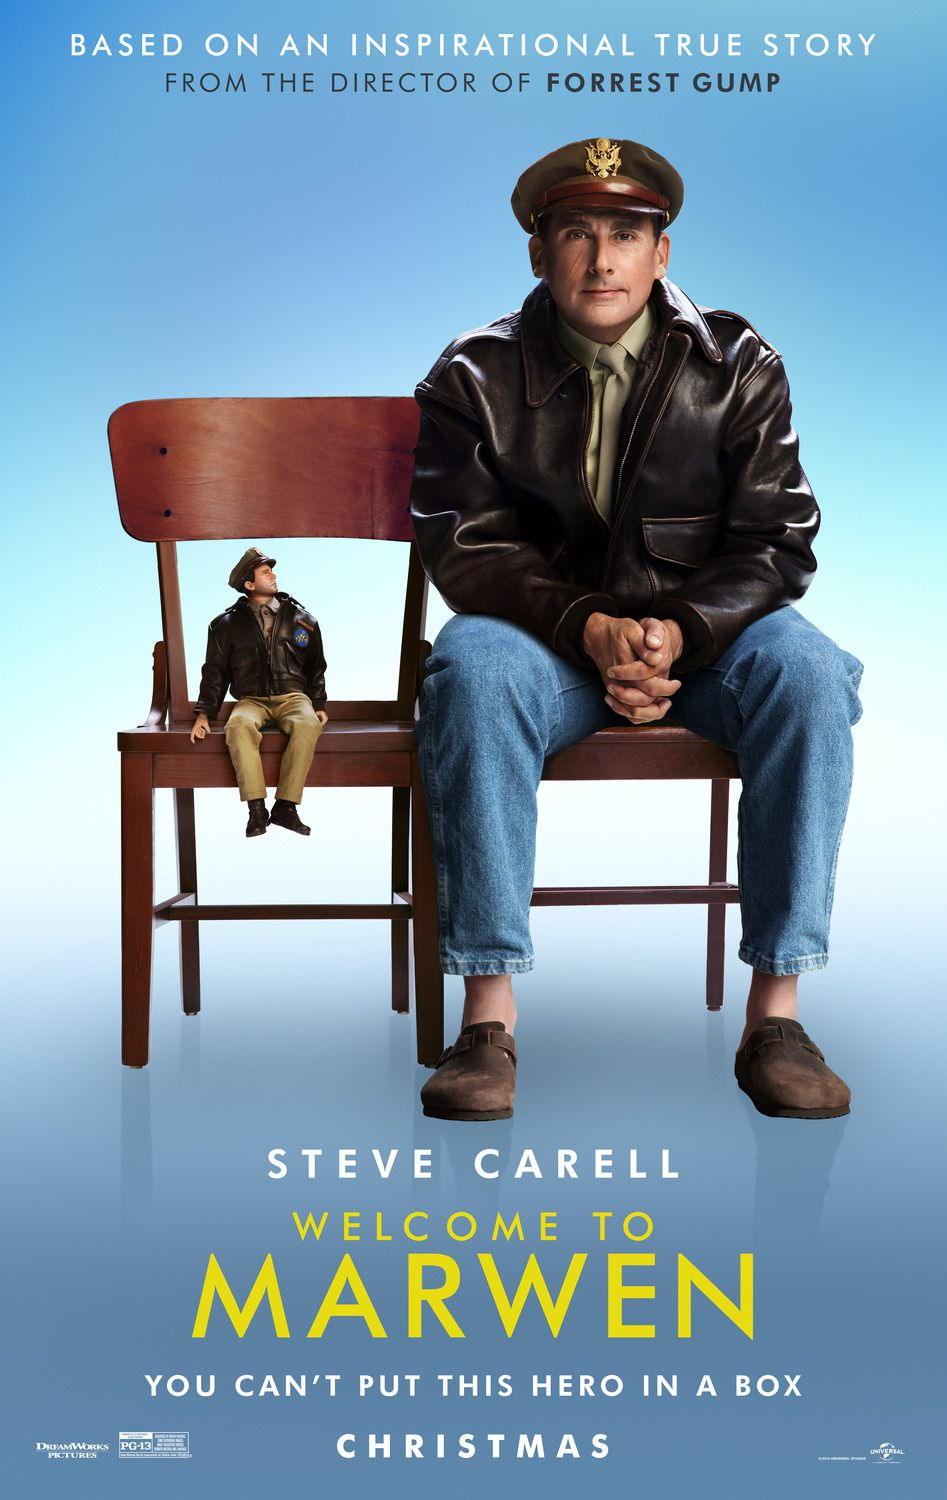 Welcome to Marwen 2018 You can't put this hero in a box - Steve Carell